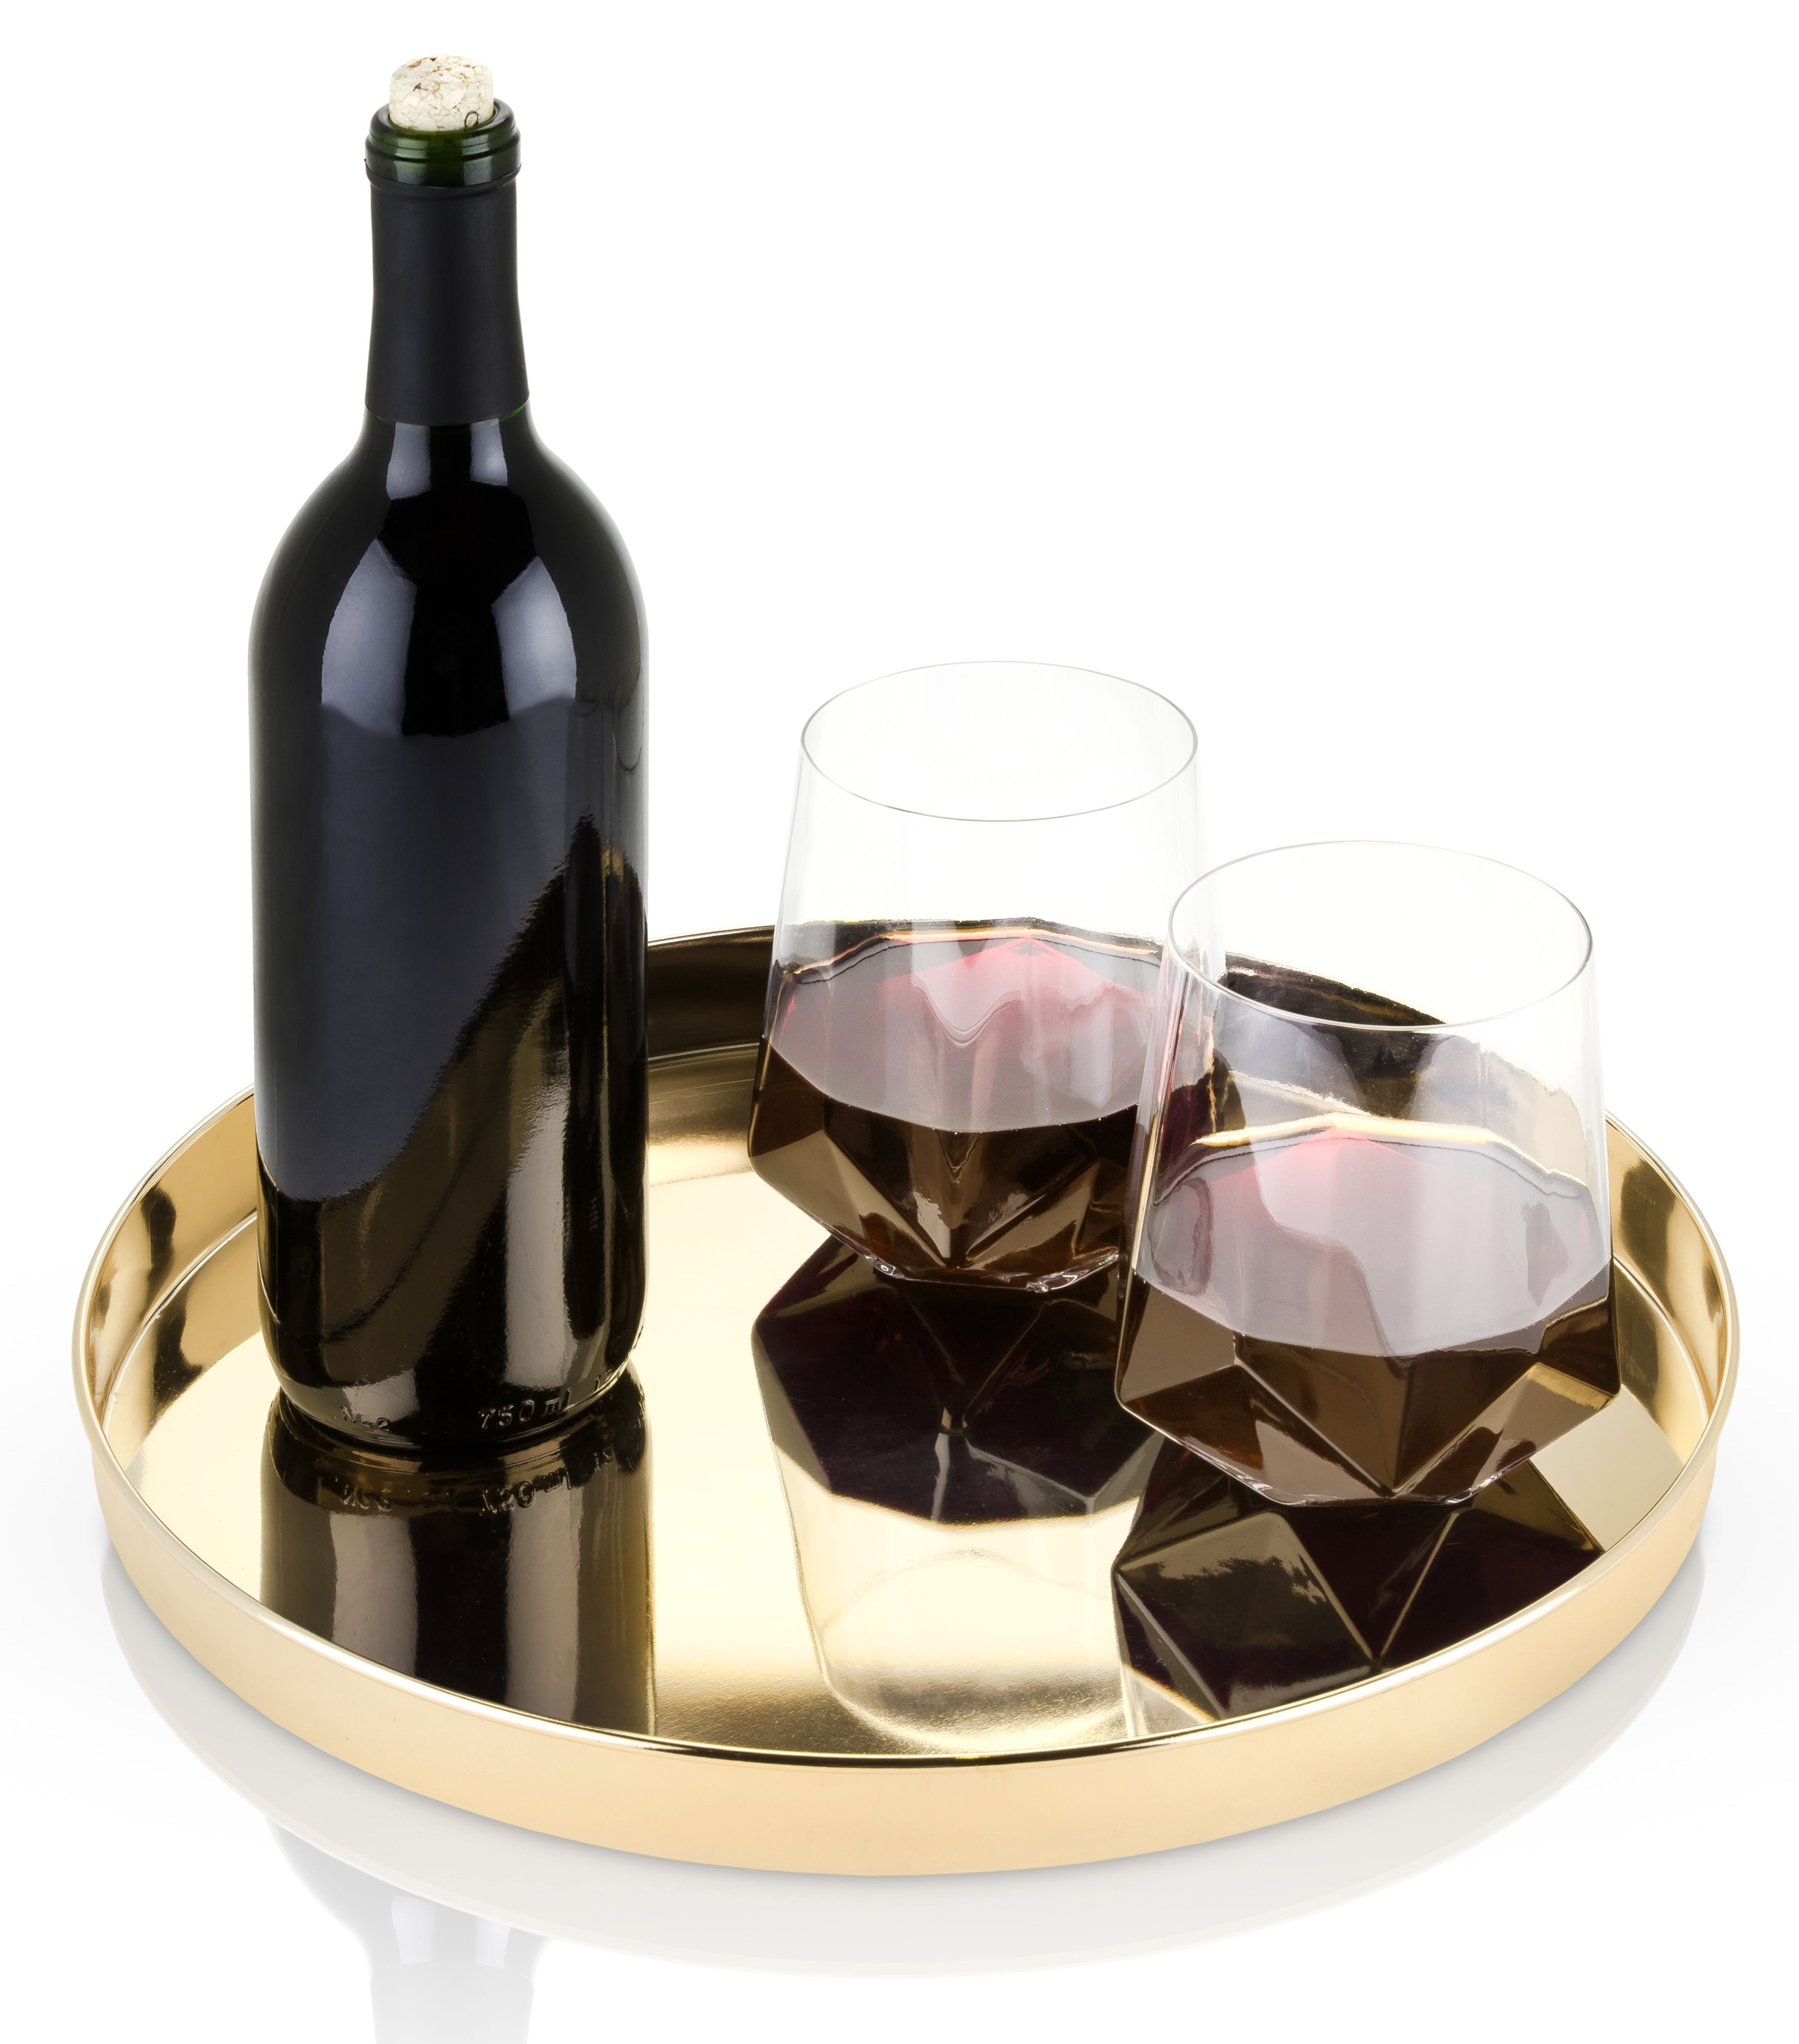 wine.com Belmont Gold Serving Tray  Gift Product Image